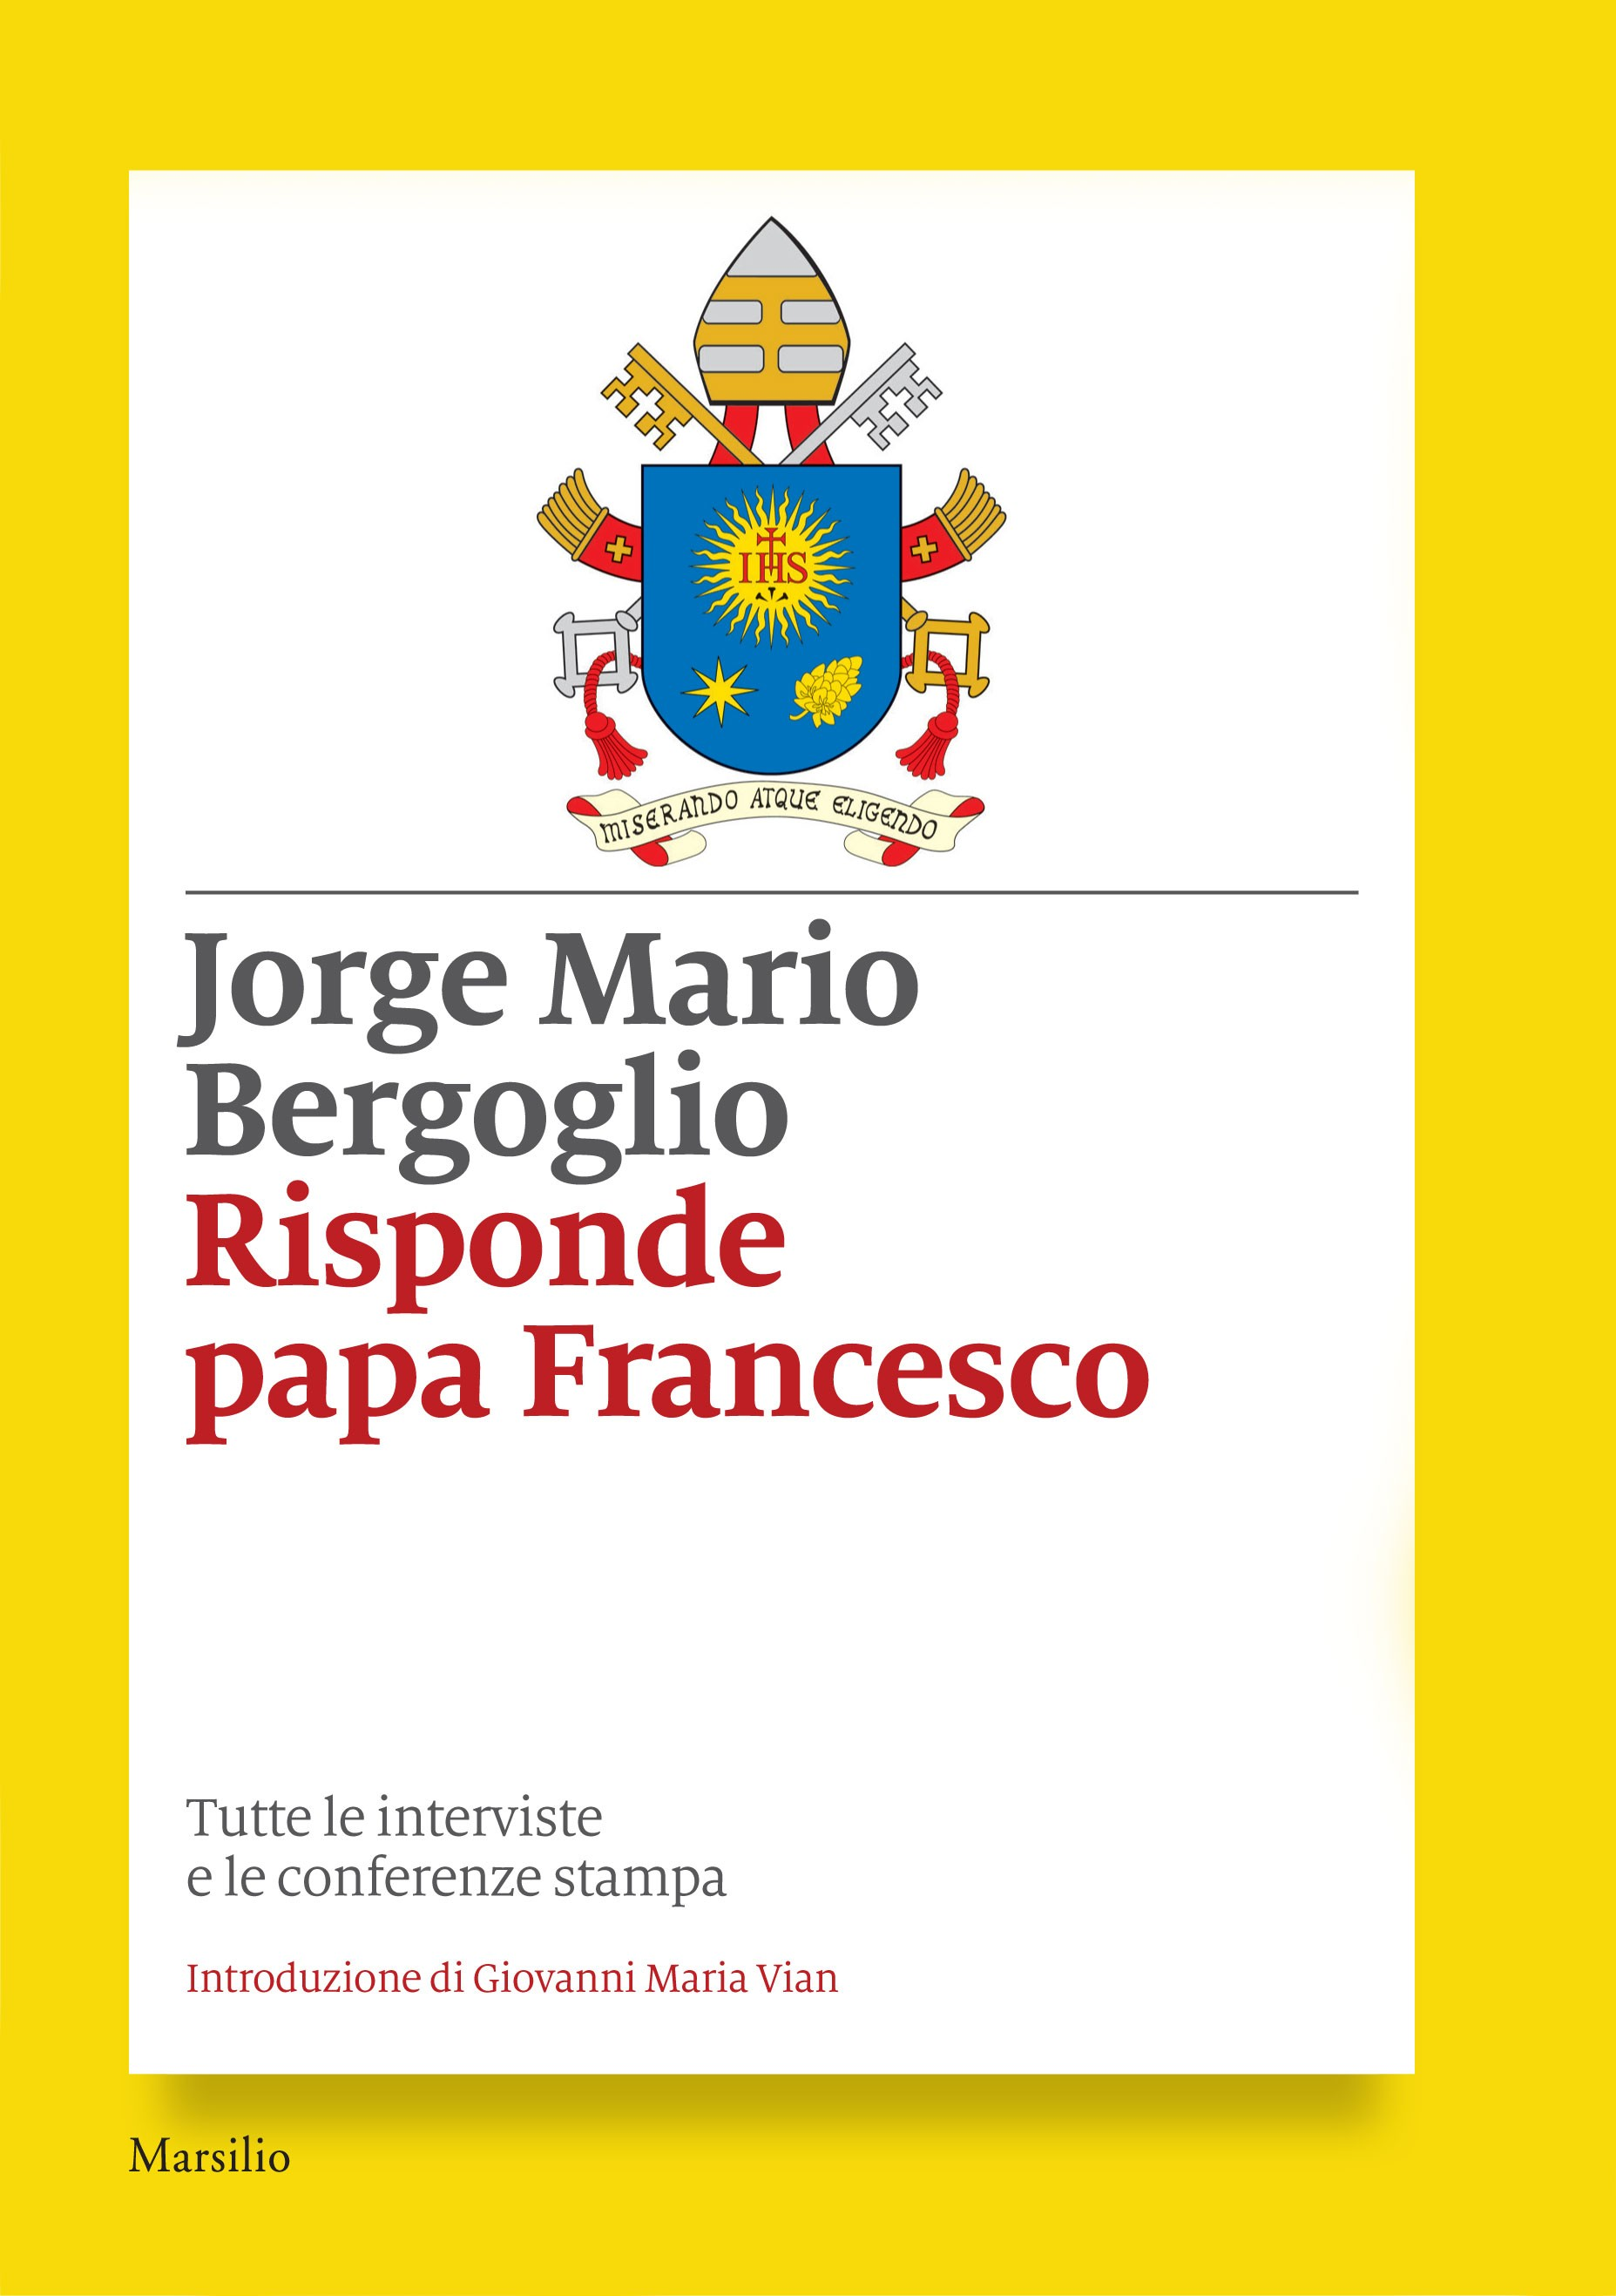 Book Cover Images Api : Risponde papa francesco jorge mario bergoglio ebook